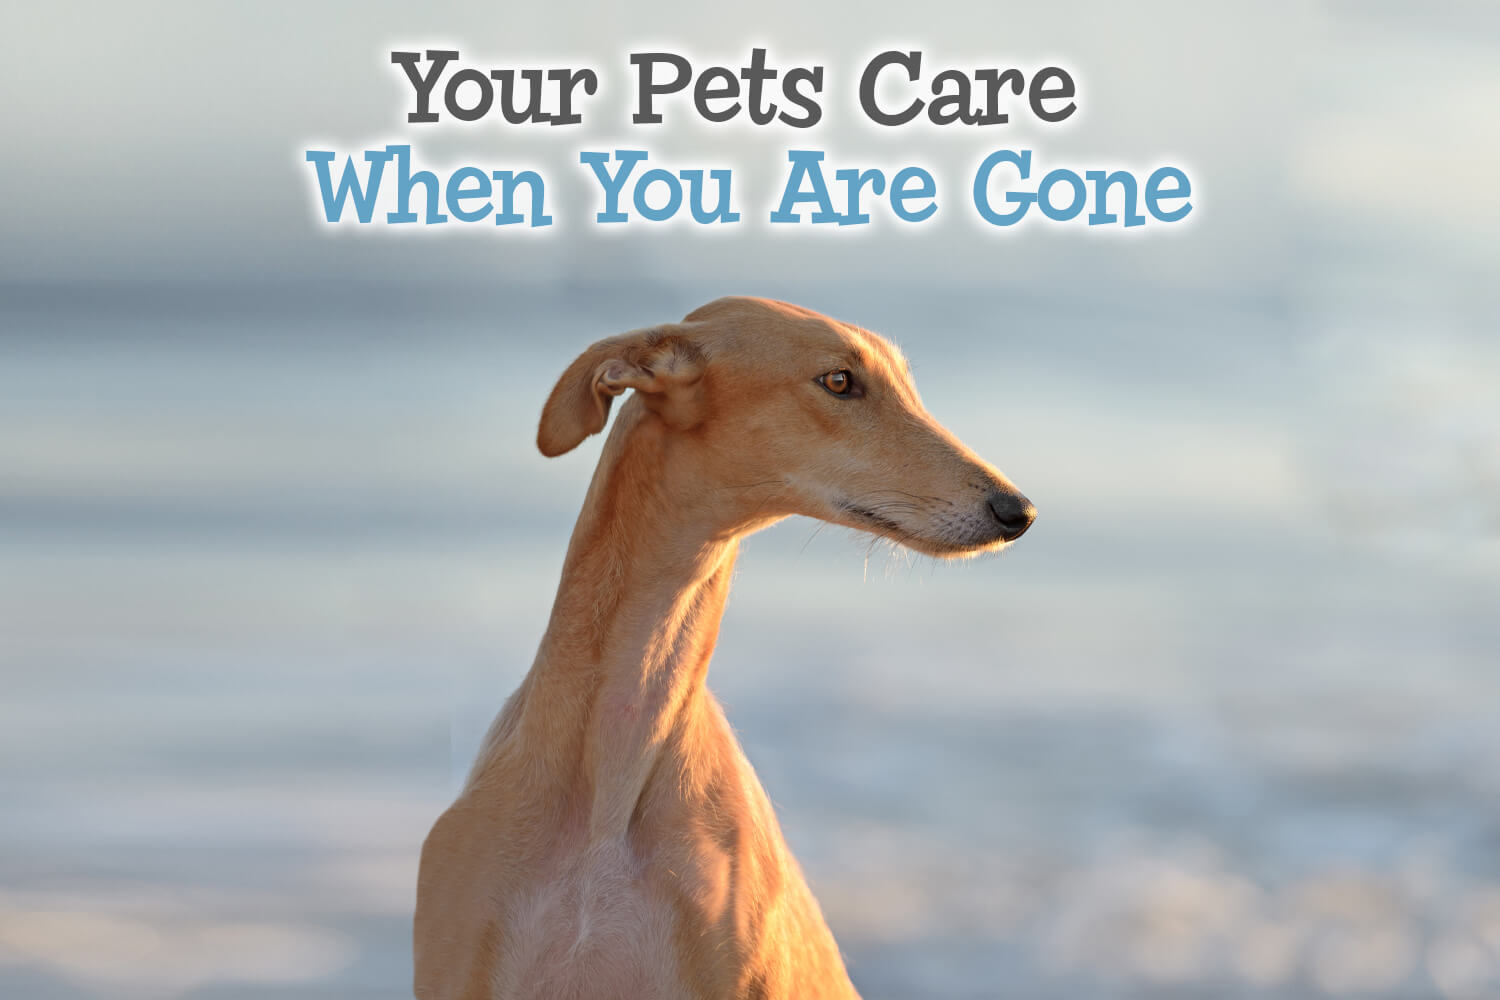 Your Pets Care When You Are Gone